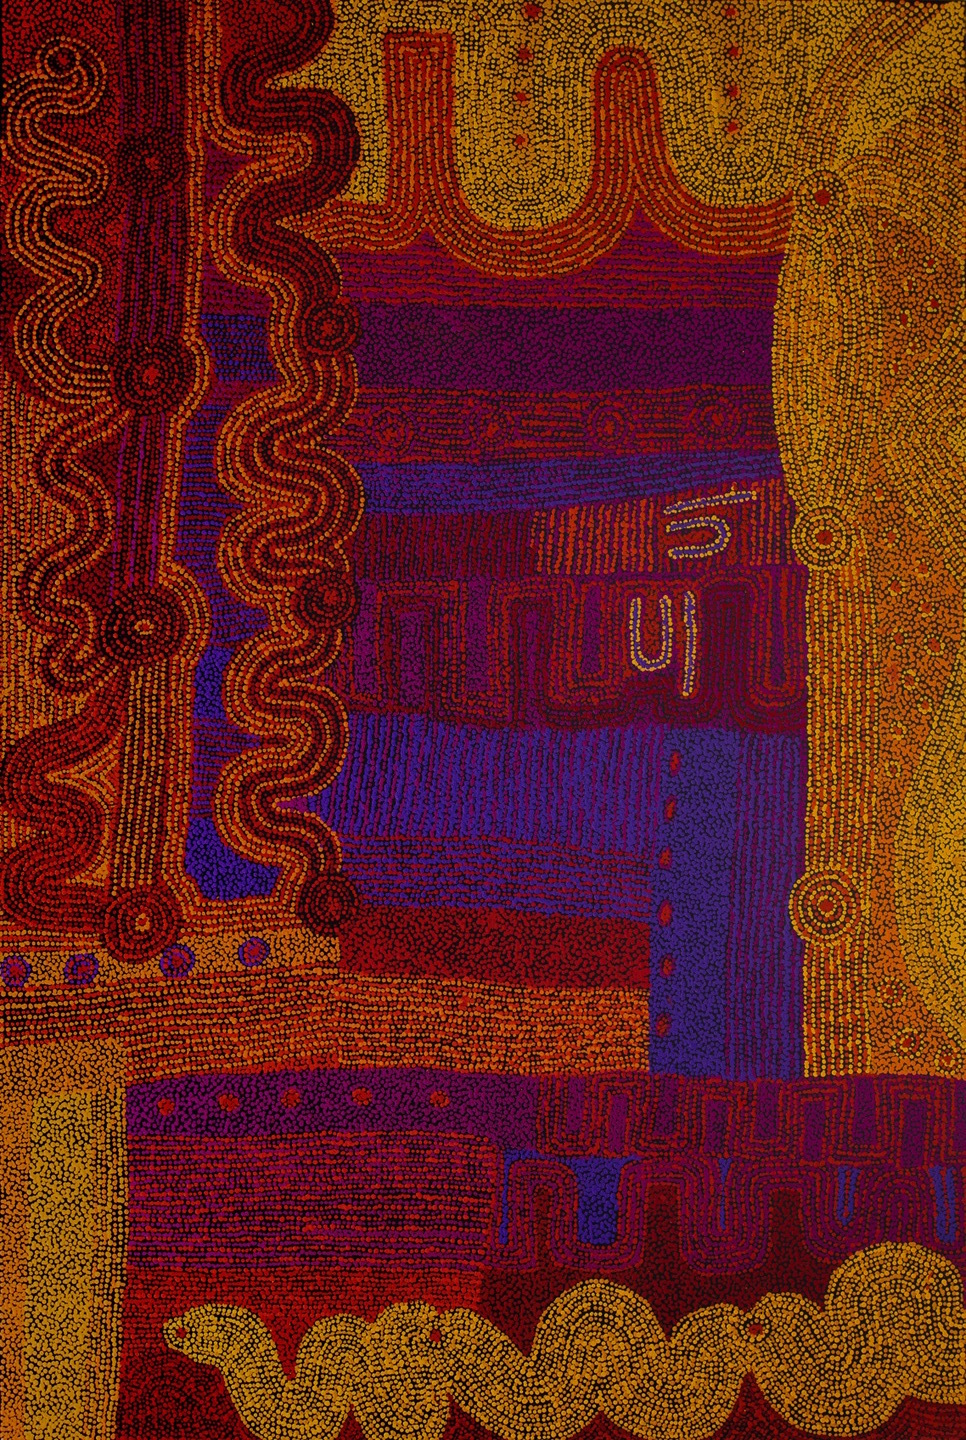 Alison Munti Riley Tjitji Kutjara (Two Children) 48 x 72 inches (122 x 172cm) acrylic on canvas Ernabella Arts Catalog #49-14   ENQUIRE